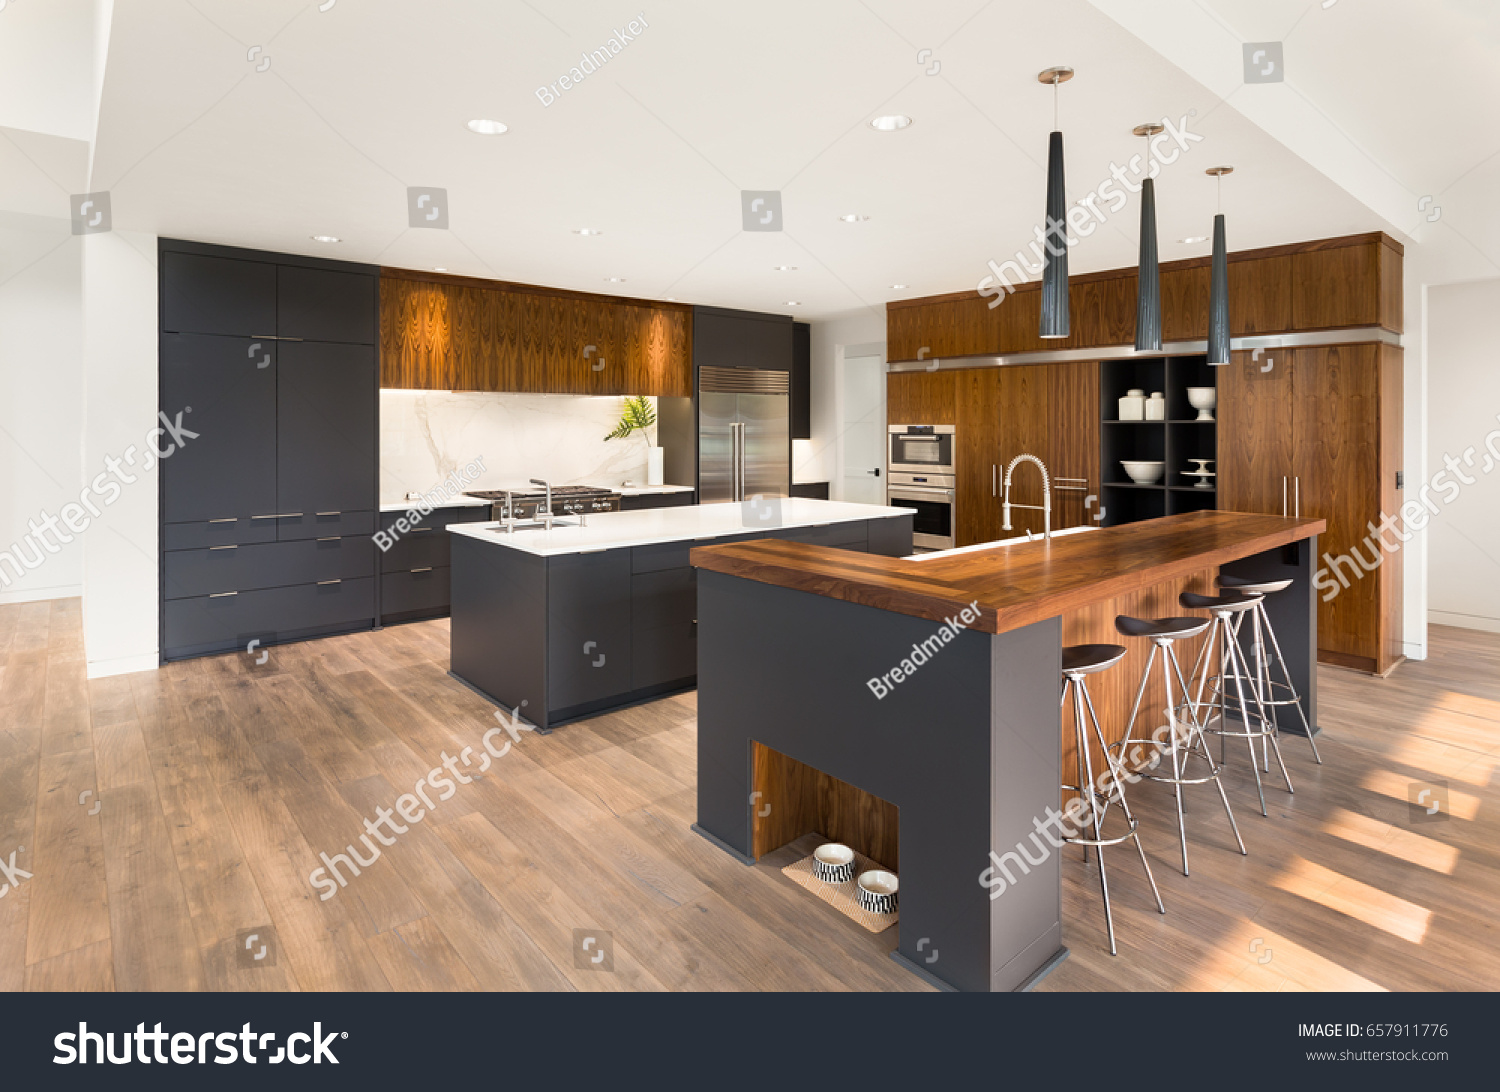 Beautiful Kitchen Interior With Island, Sink, Cabinets, And Hardwood Floors  In New Luxury